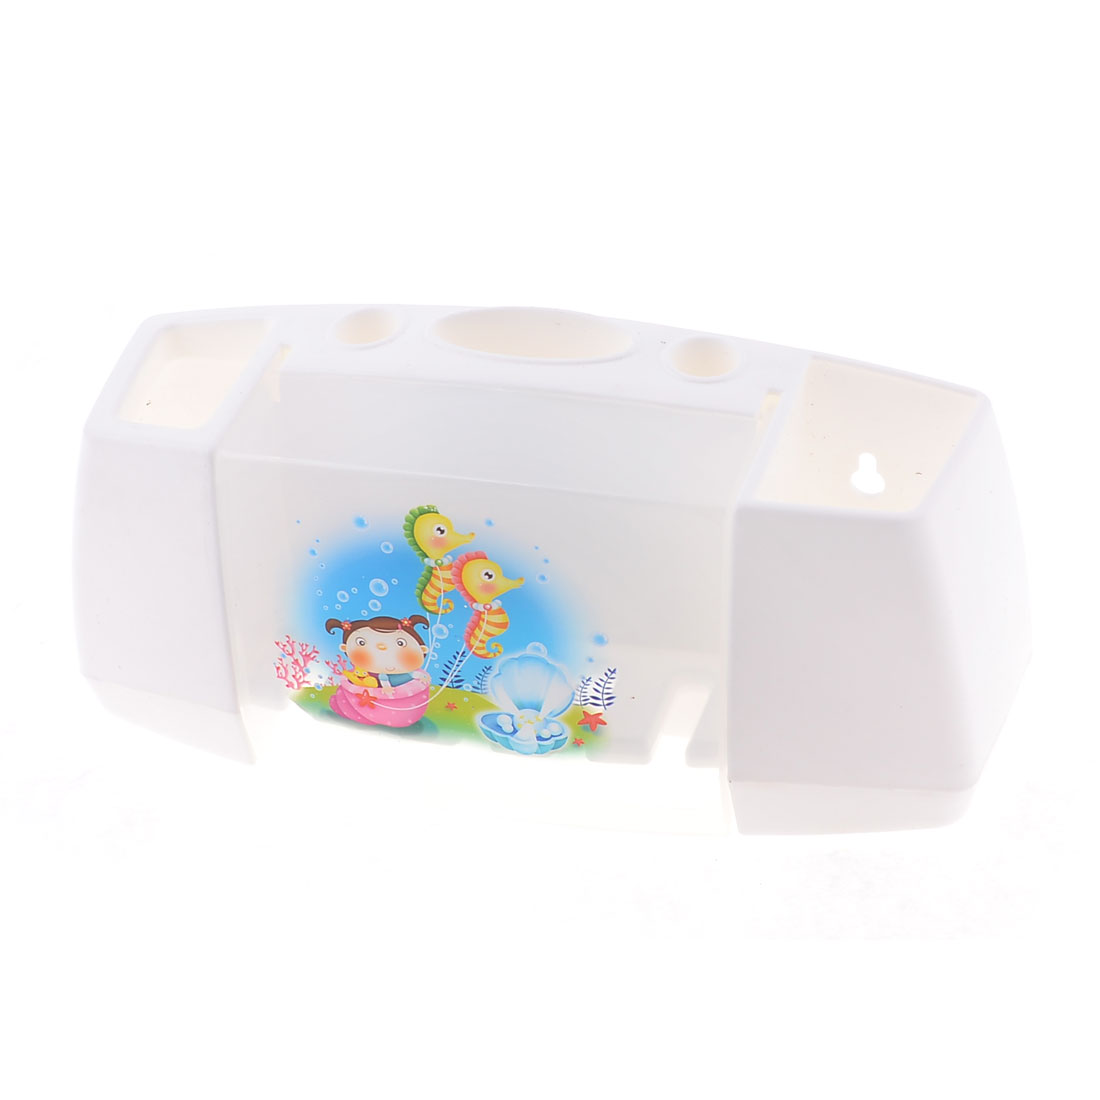 Cartoon Printed White Clear Plastic Home Toothbrush Holder Box